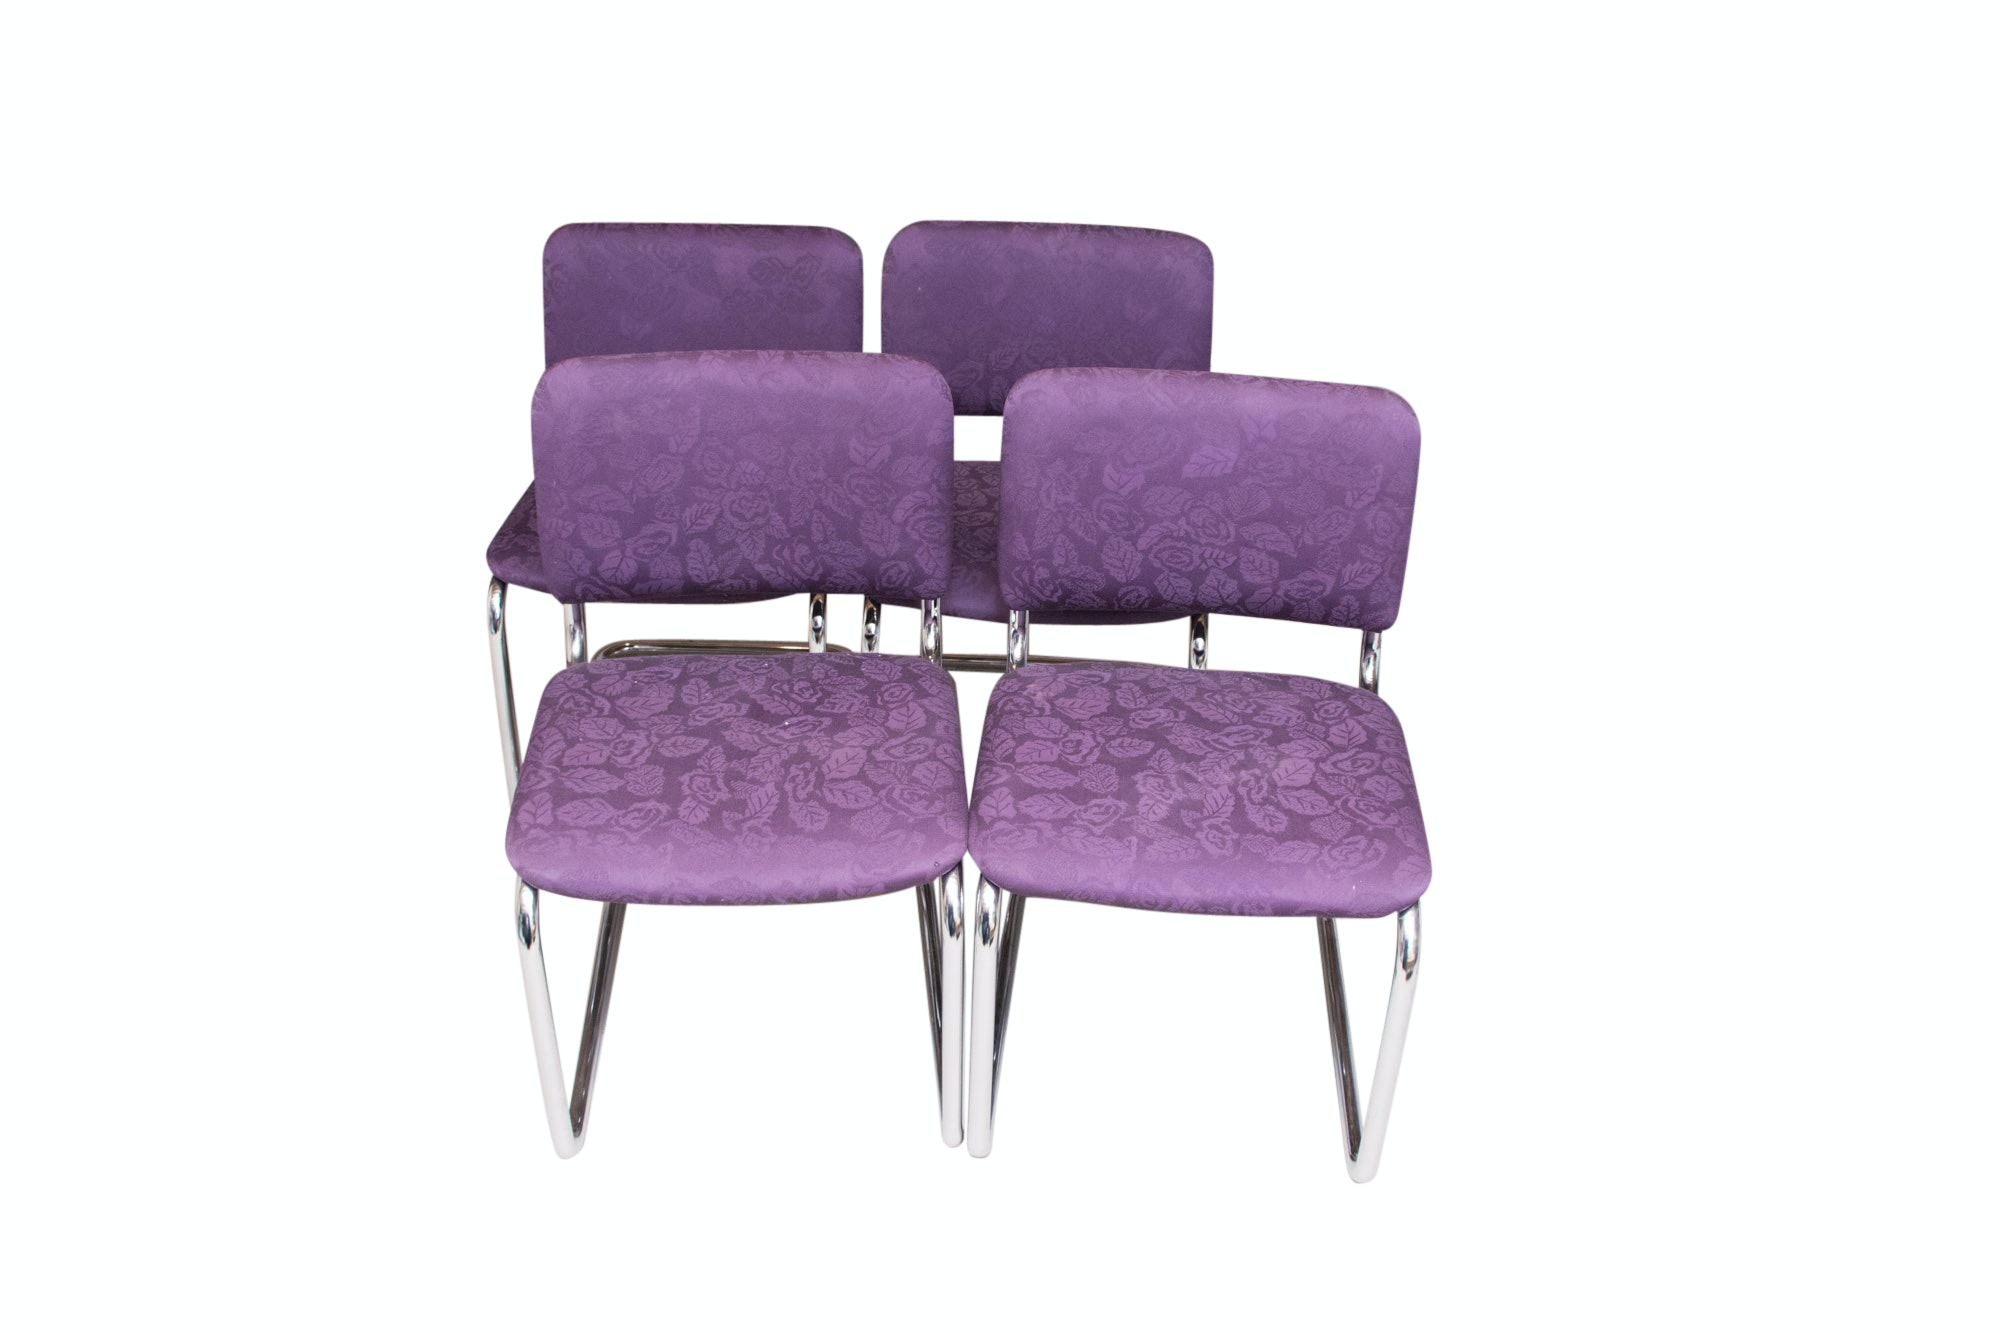 Four Upholstered Chairs